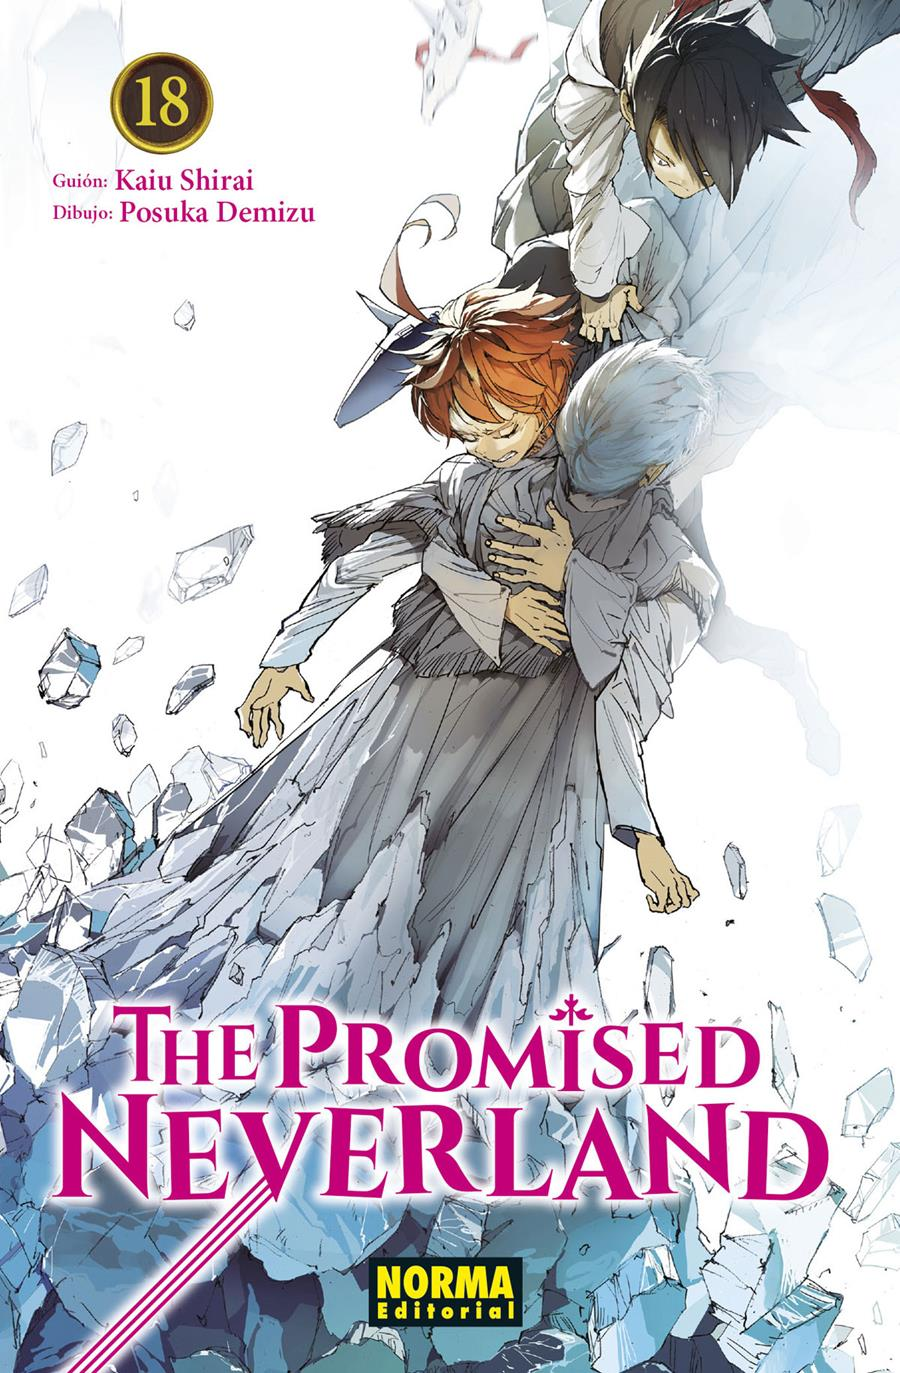 The promised neverland 18 | N0421-NOR21 | Kaiu Shira, Posuka Demizu | Terra de Còmic - Tu tienda de cómics online especializada en cómics, manga y merchandising